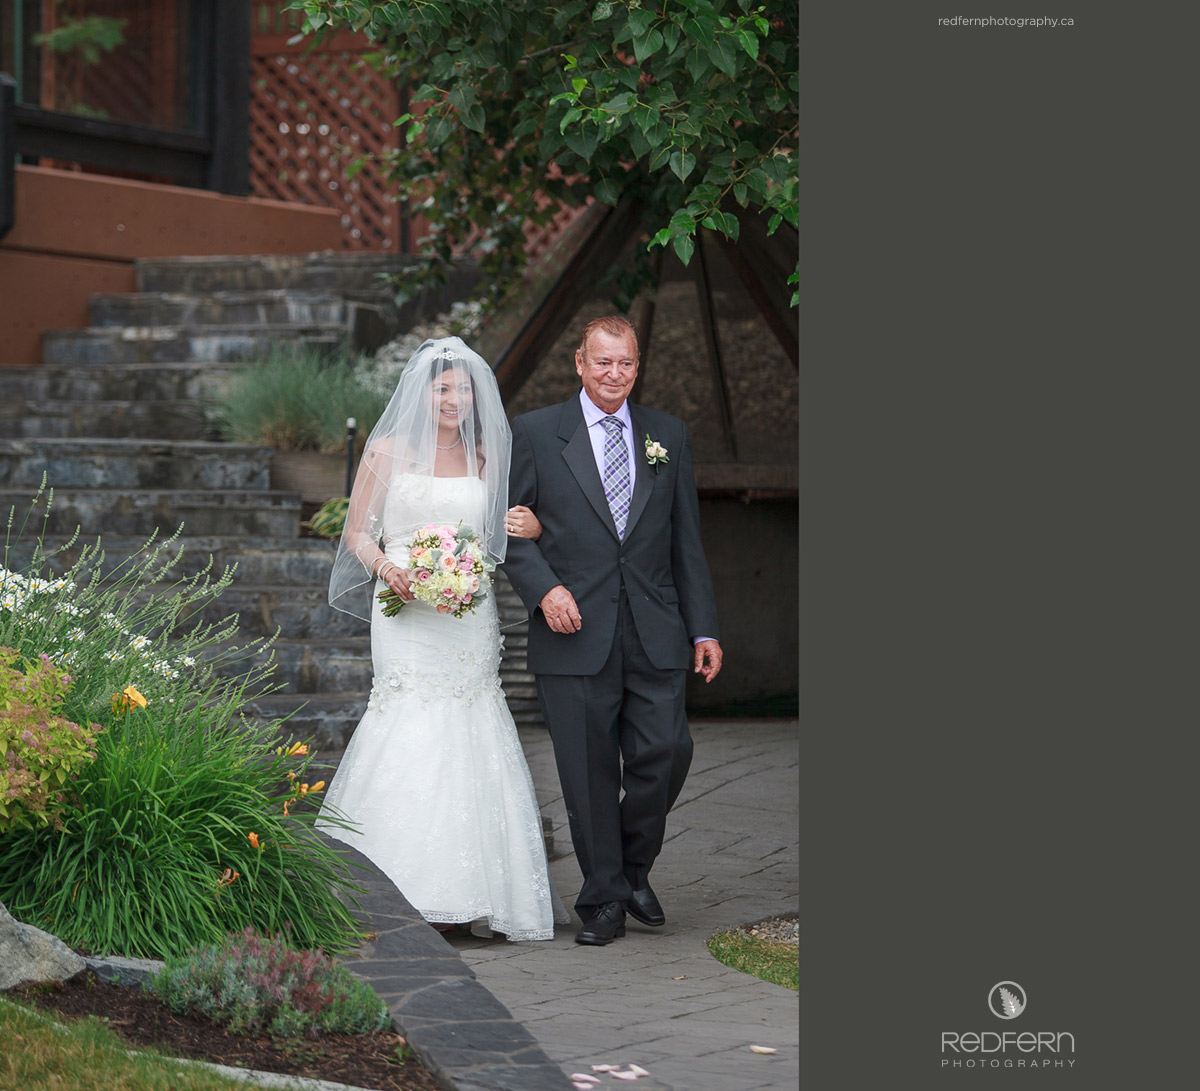 summerhill_winery_wedding_ceremony_outdoor